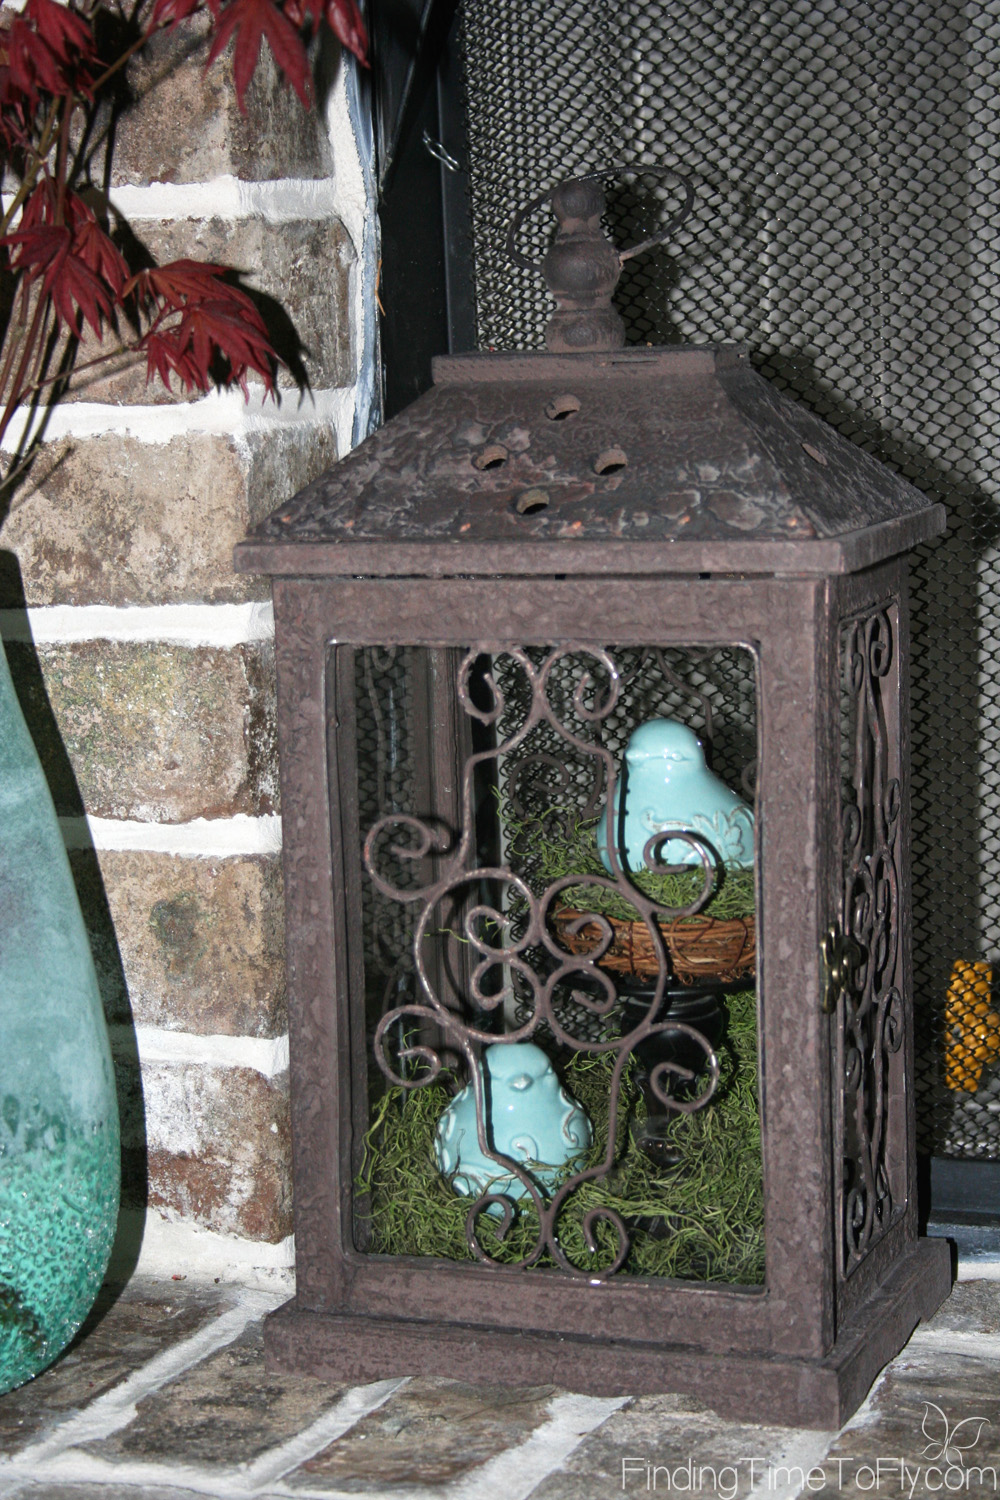 This year I kept my mantles uncluttered going with simple spring fireplace mantle decor. Get spring mantle ideas here!